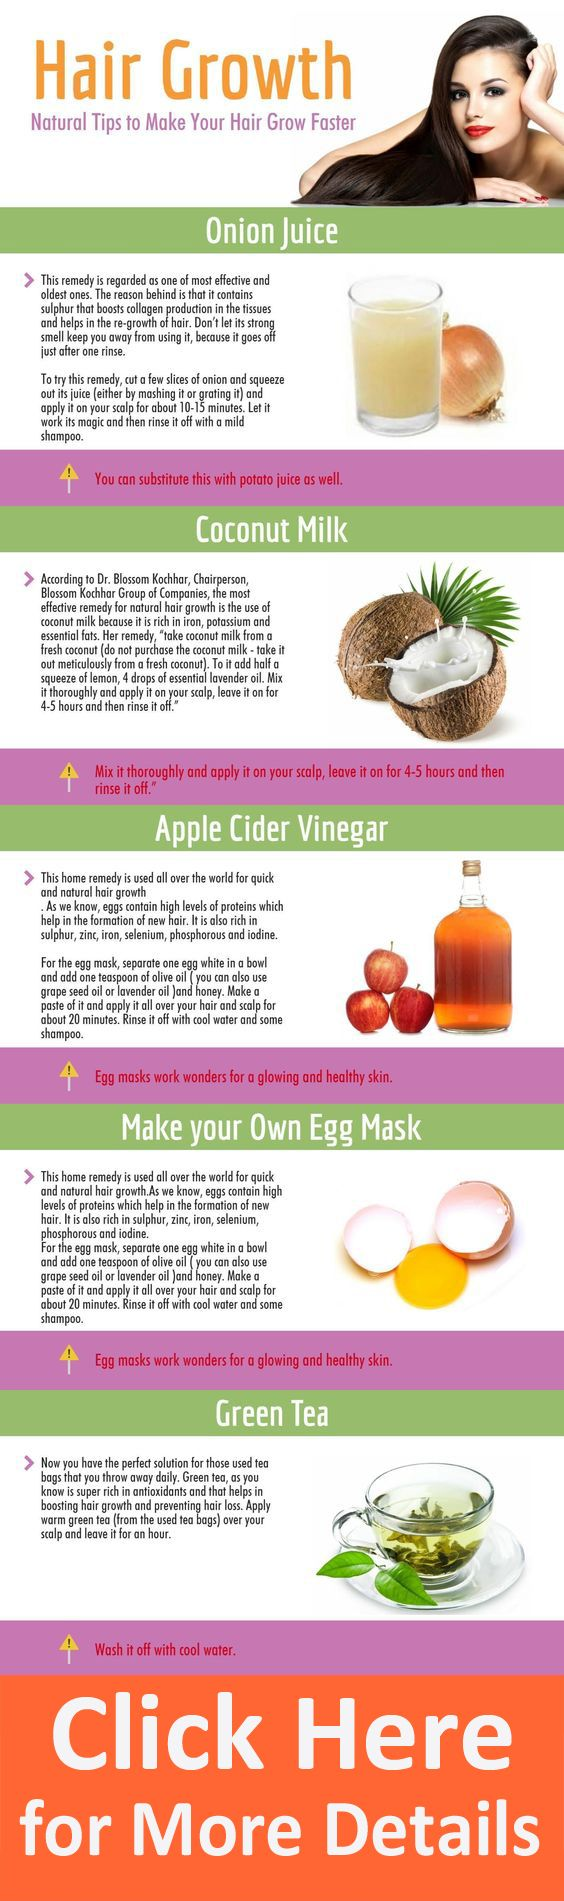 How To Control Hair Fall 9 Ways To Prevent Hair Loss How To Control Hair Fall Boost Hair Growth Home Re Grow Hair Make Hair Grow Faster Hair Loss Clinic